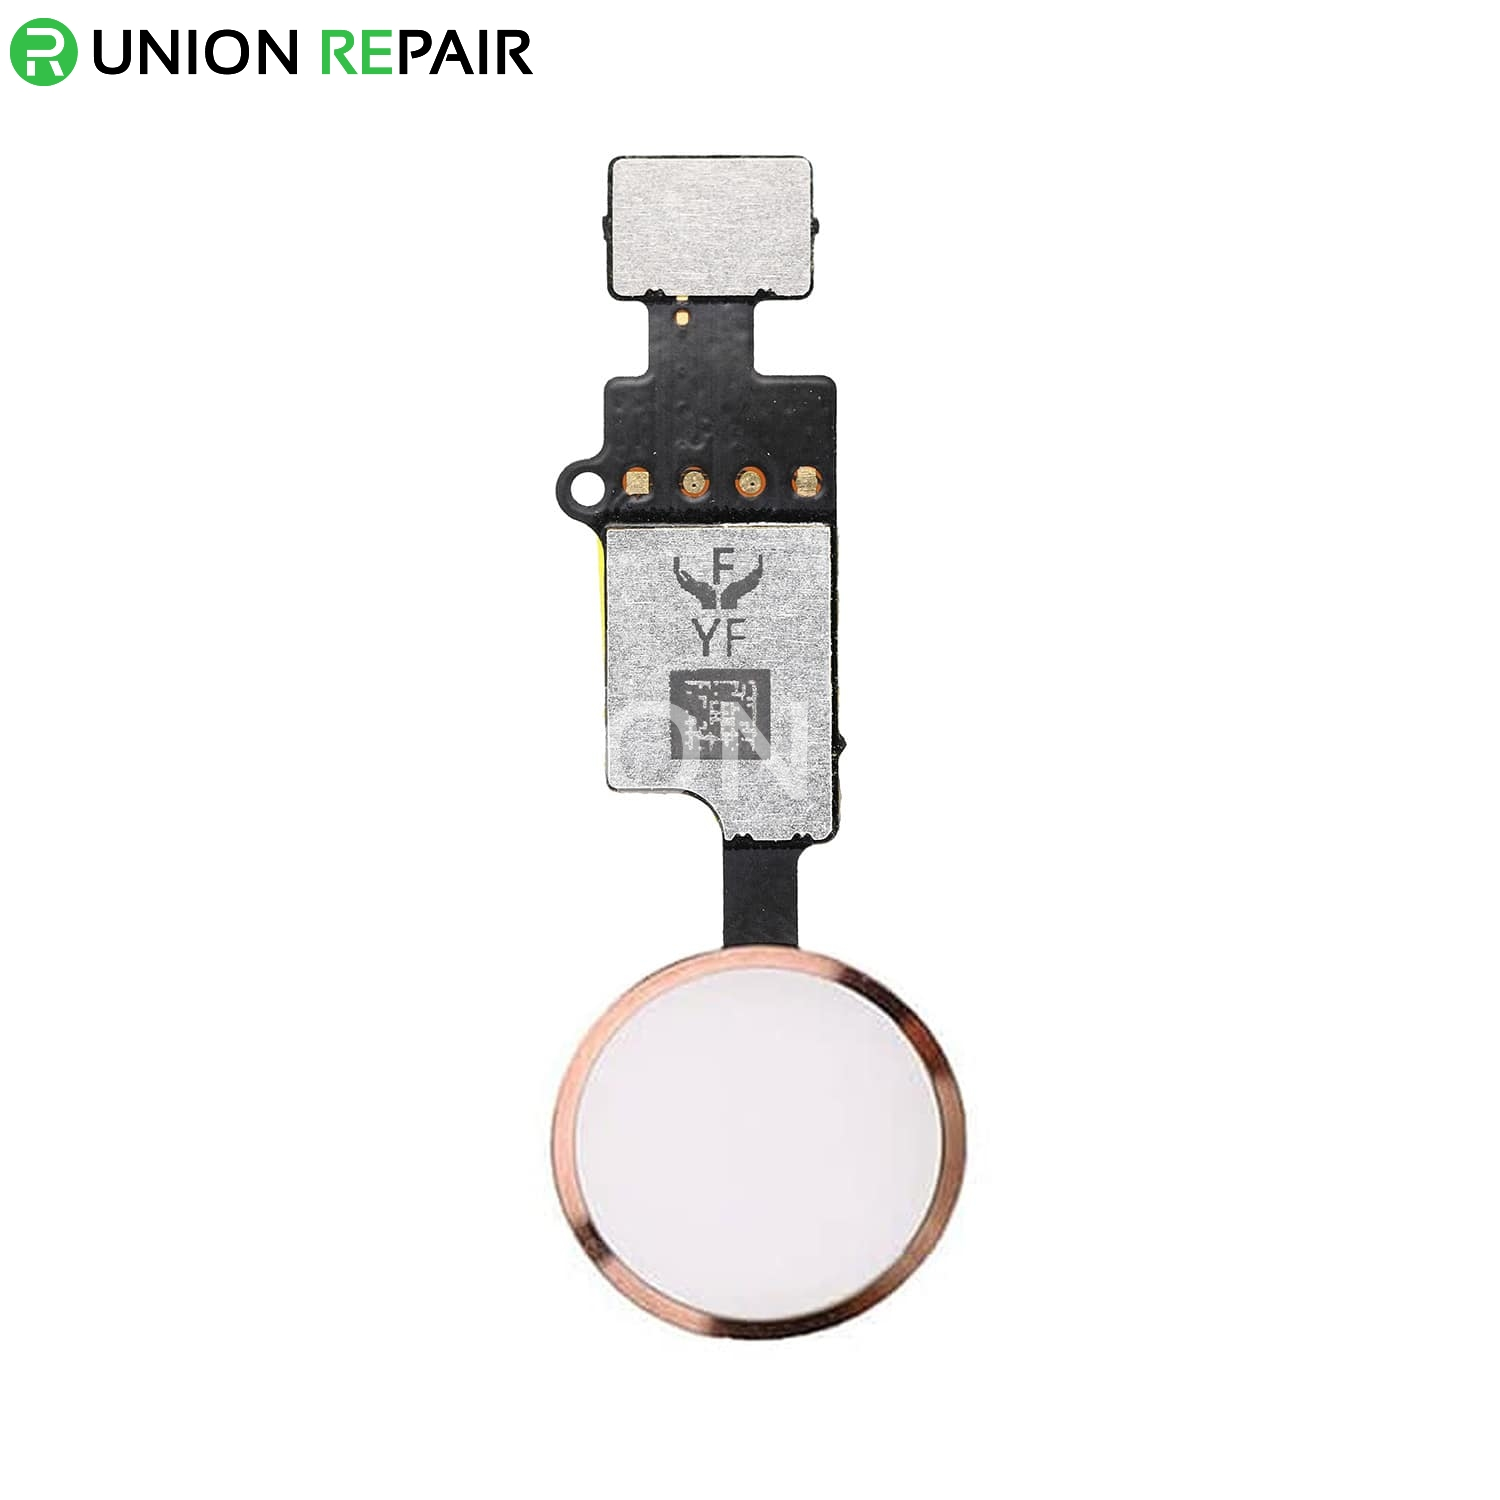 YF Universal Home Button with Return Function for iPhone 7/7Plus/8/8Plus